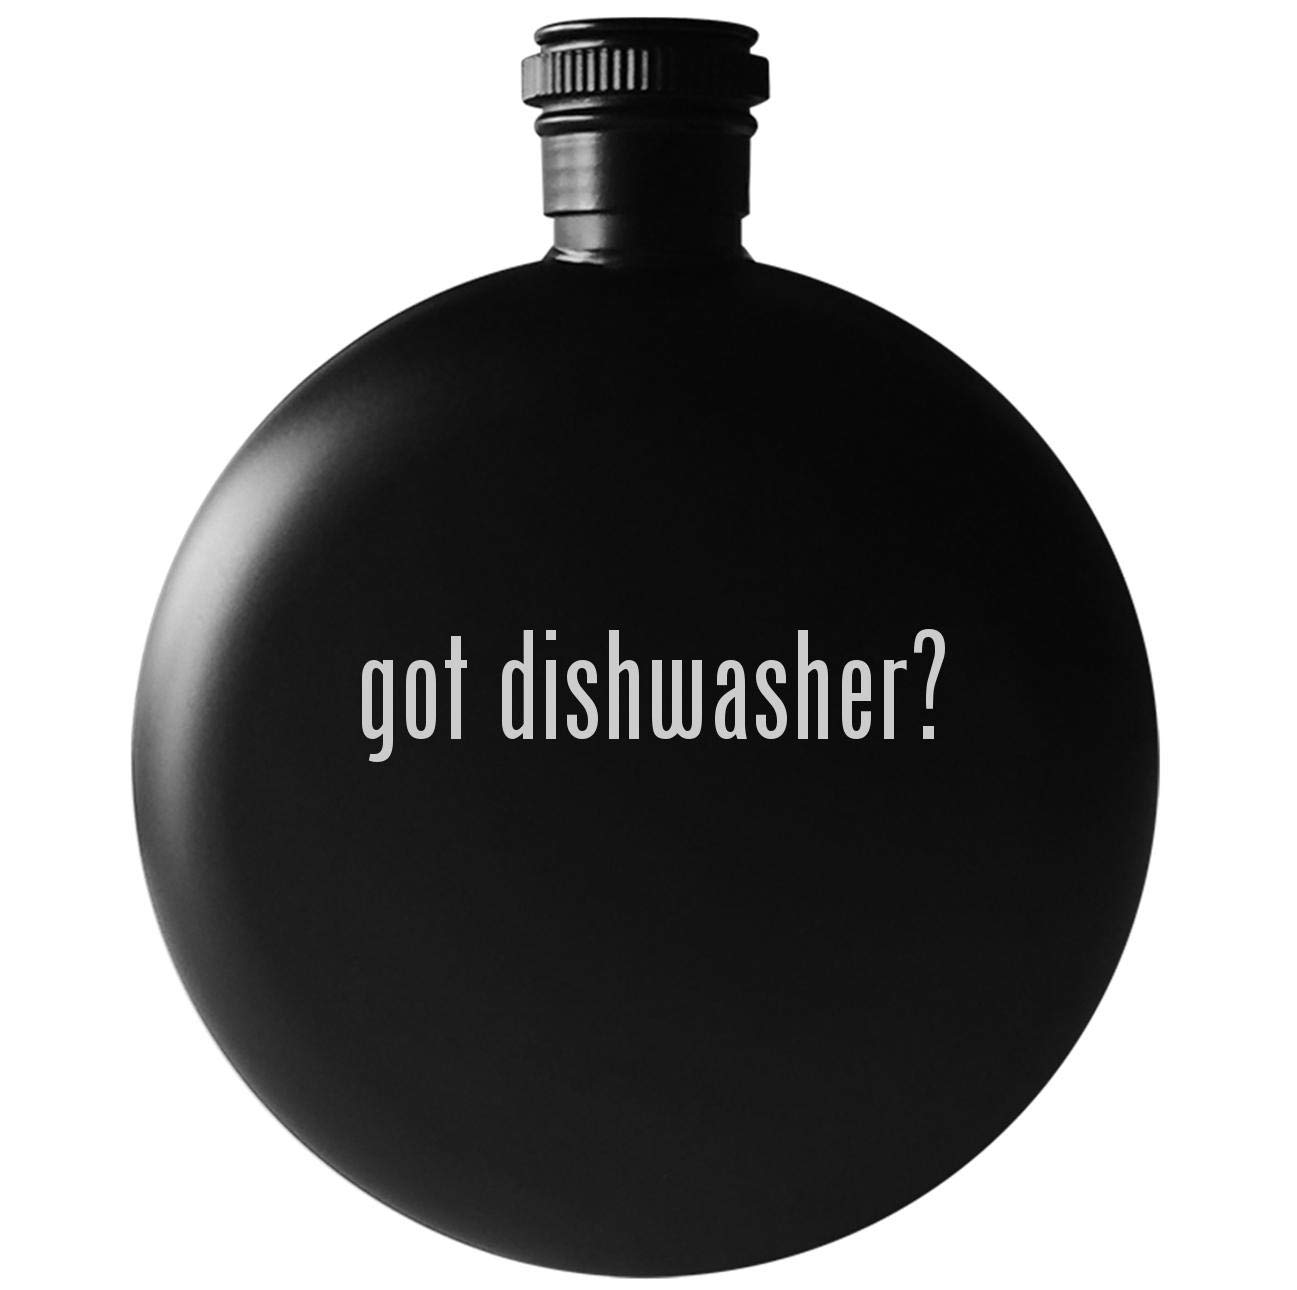 got dishwasher? - 5oz Round Drinking Alcohol Flask, Matte Black